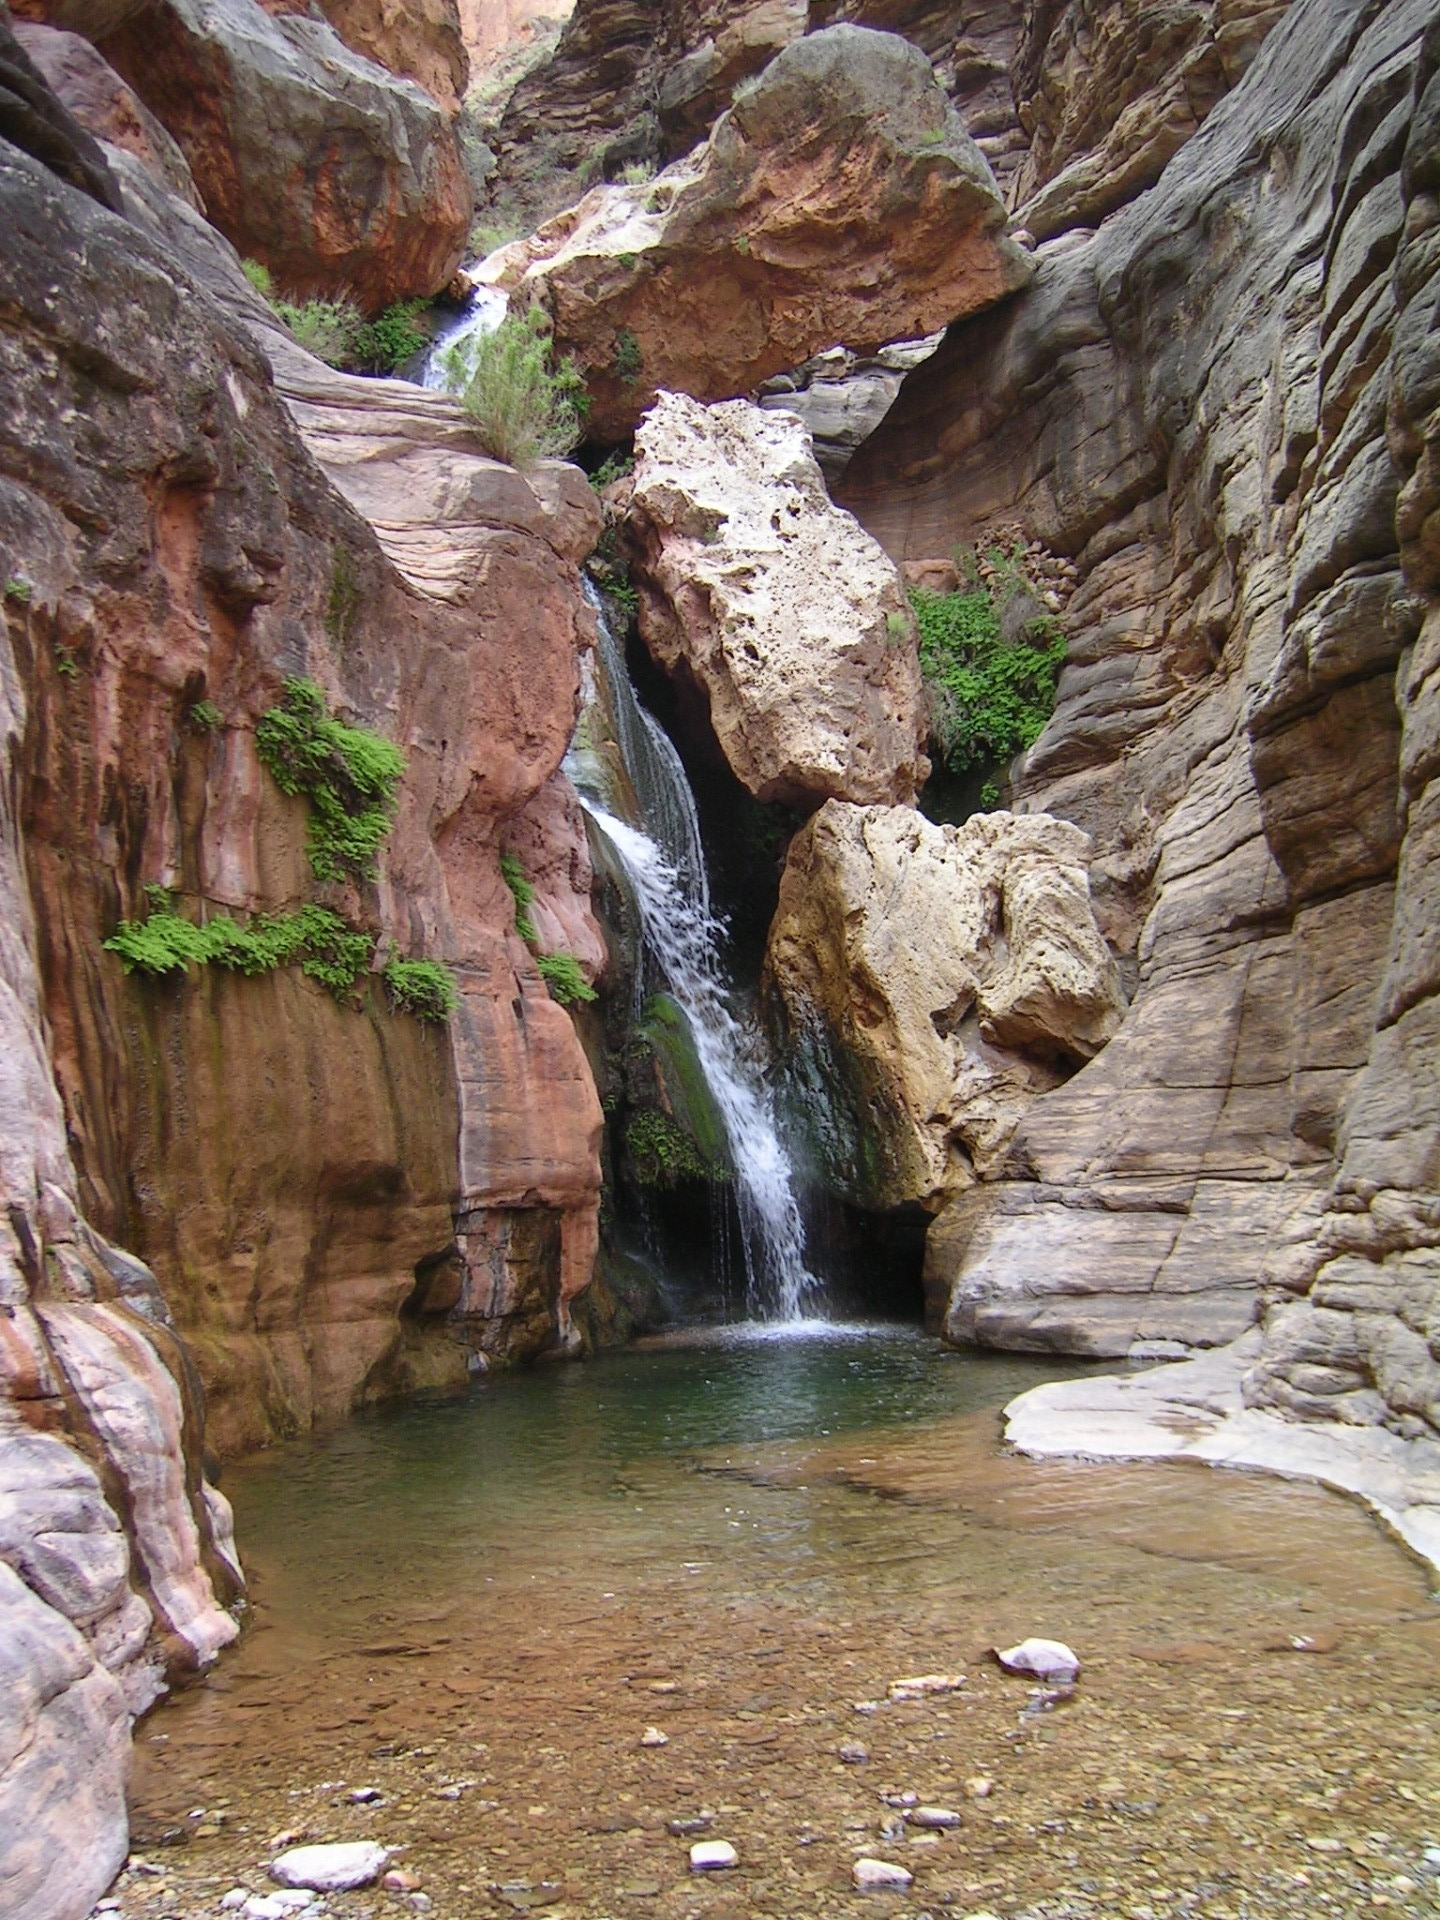 Elves Chasm spring-fed waterfalls. We often stop here on river trips. Photo by Bob Martin